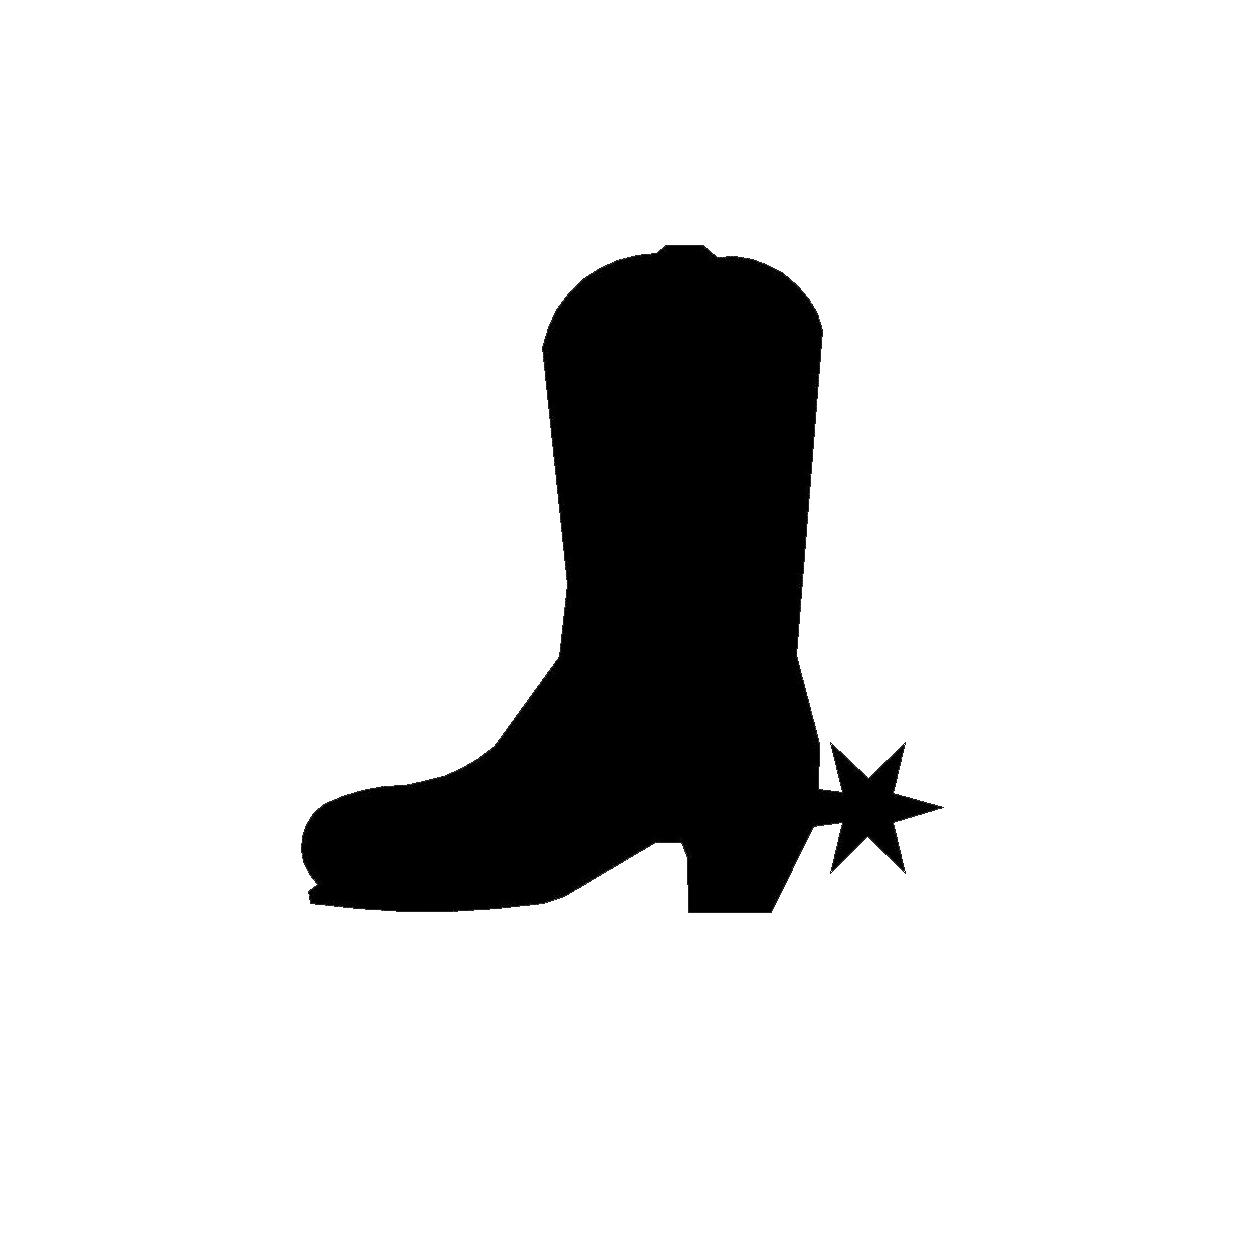 Cowboy boot silhouette clipart